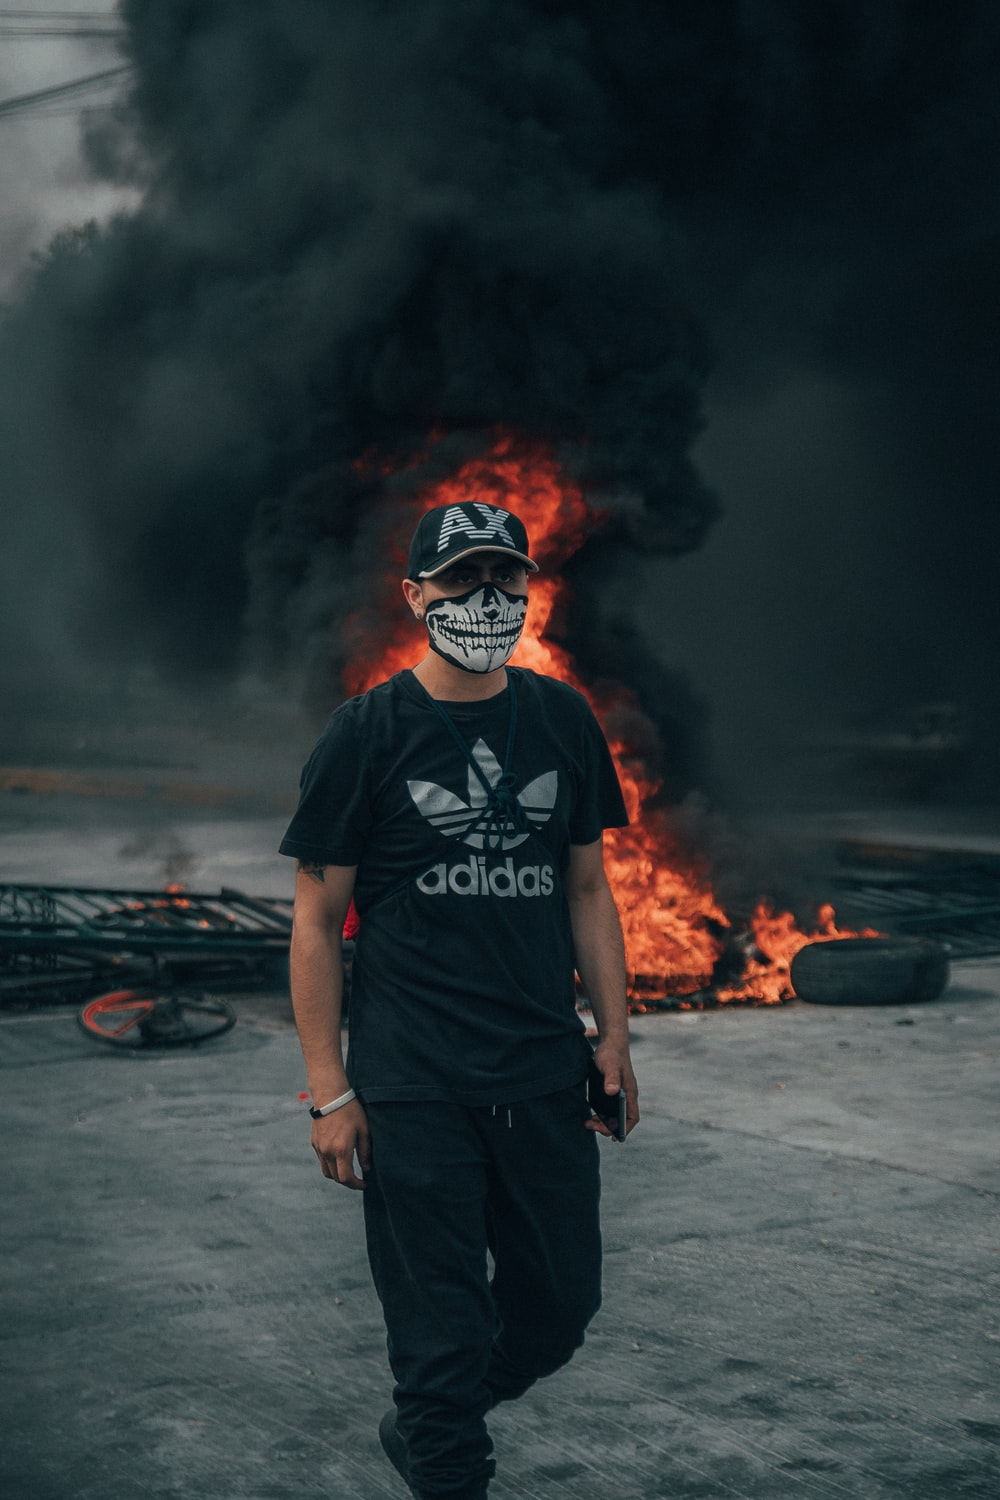 man in skull mask and black Adidas t-shirt